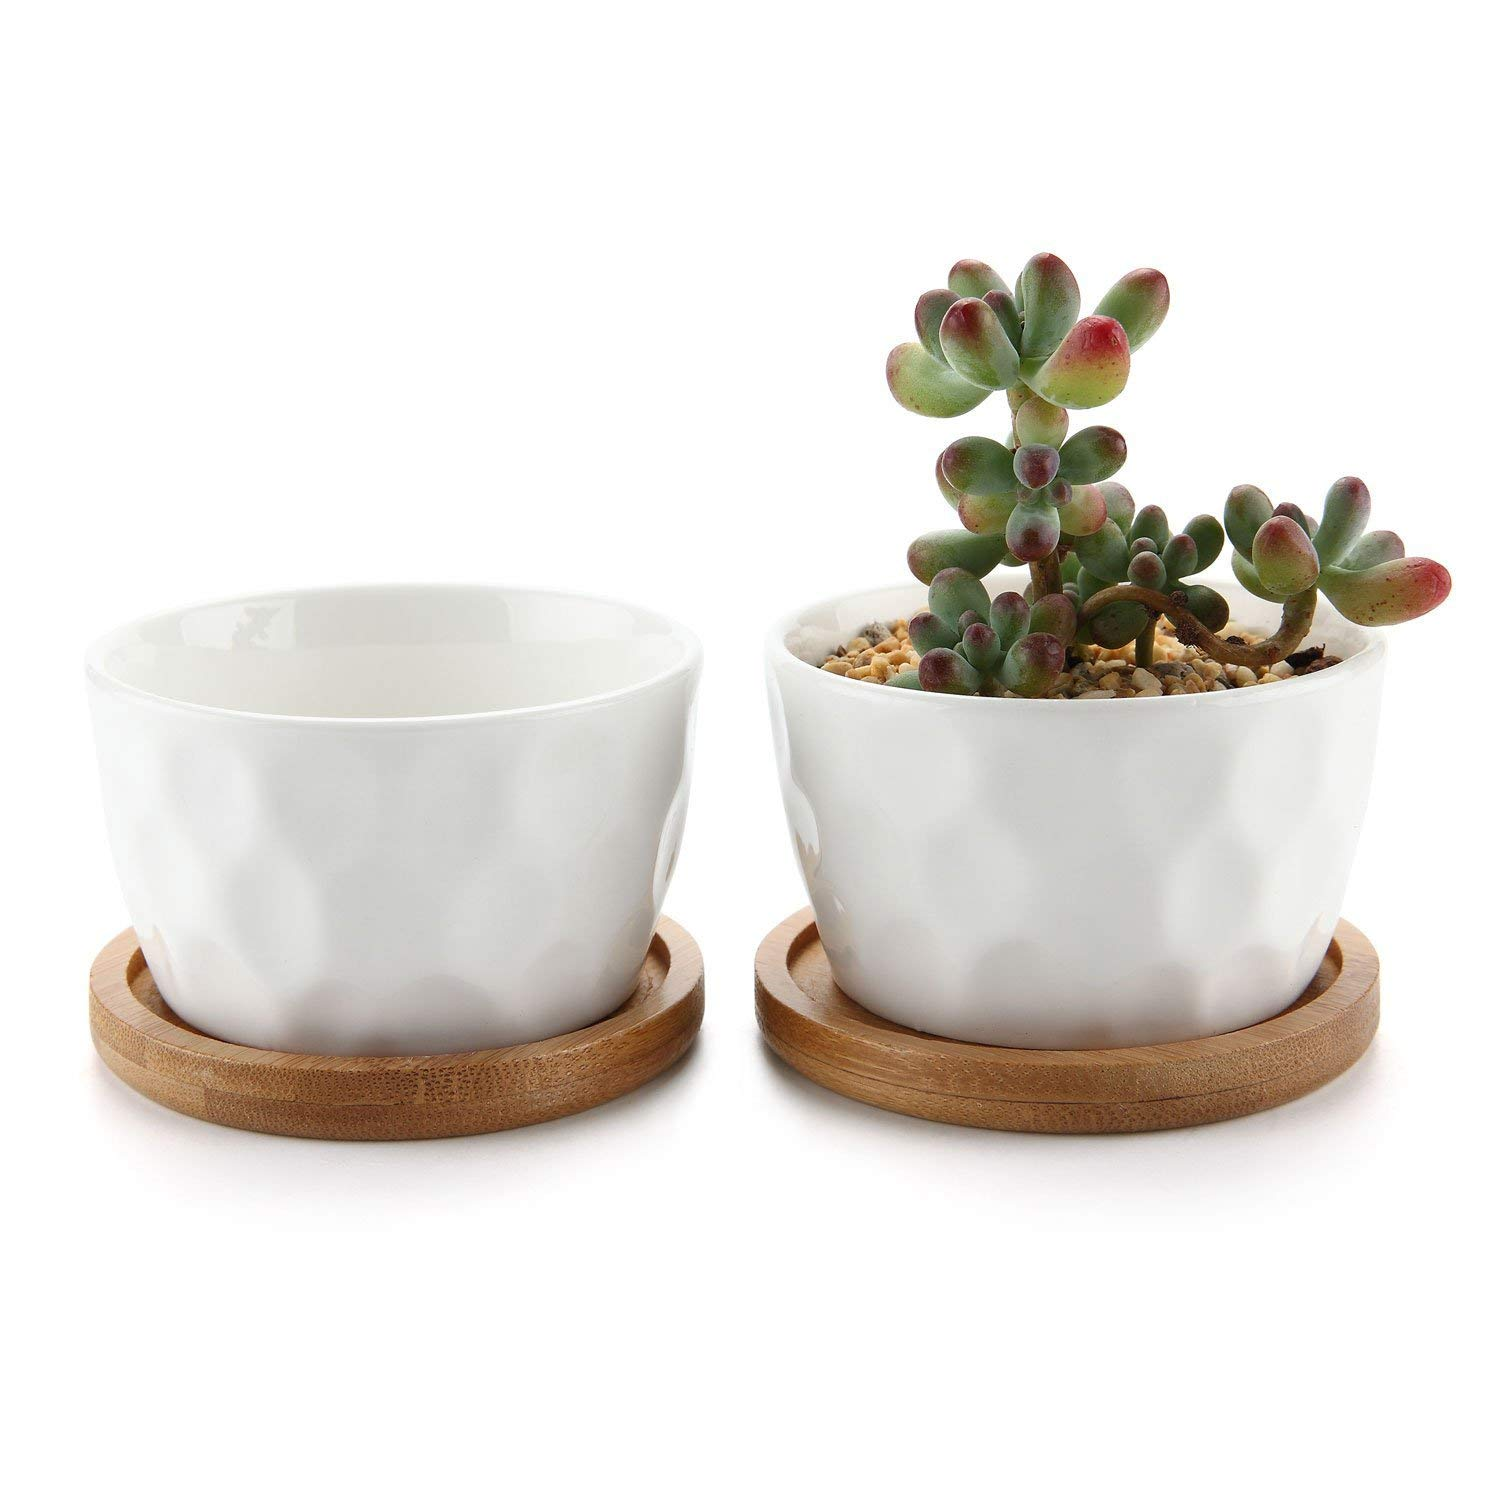 T4U 3.2 Inch White Ceramic Contemporary Honeycomb Surface Succulent Plant Pot Cactus Plant Pot Container with Bamboo Tray – Pack of 2